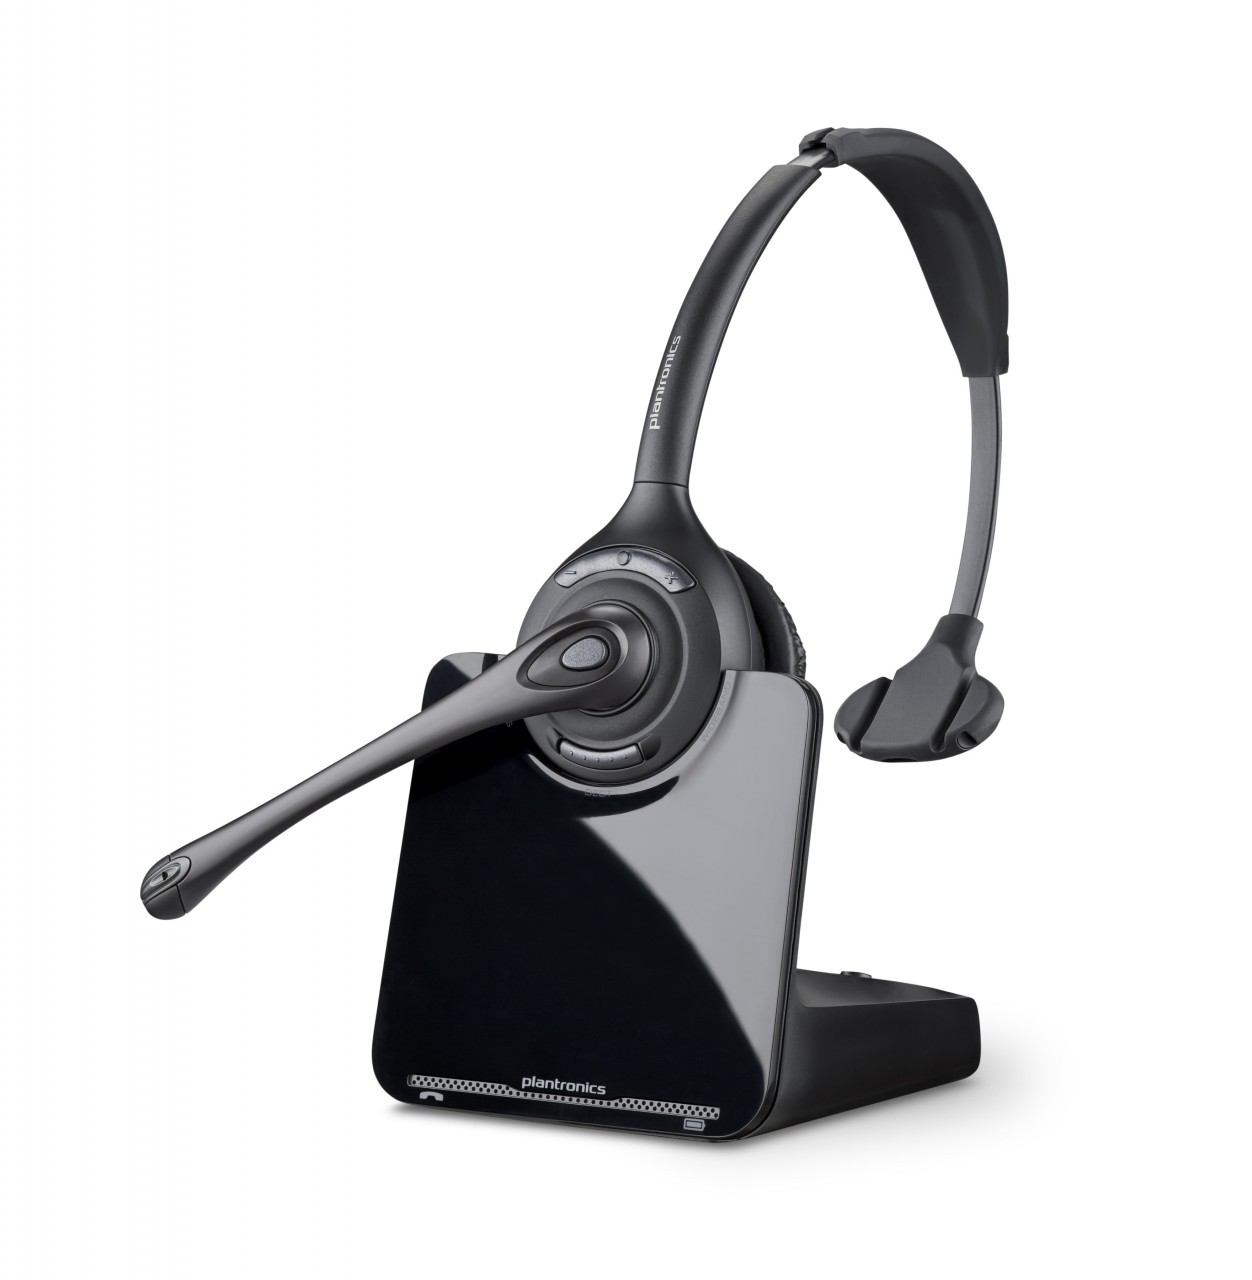 How to eliminate echo from my Plantronics wireless headset when